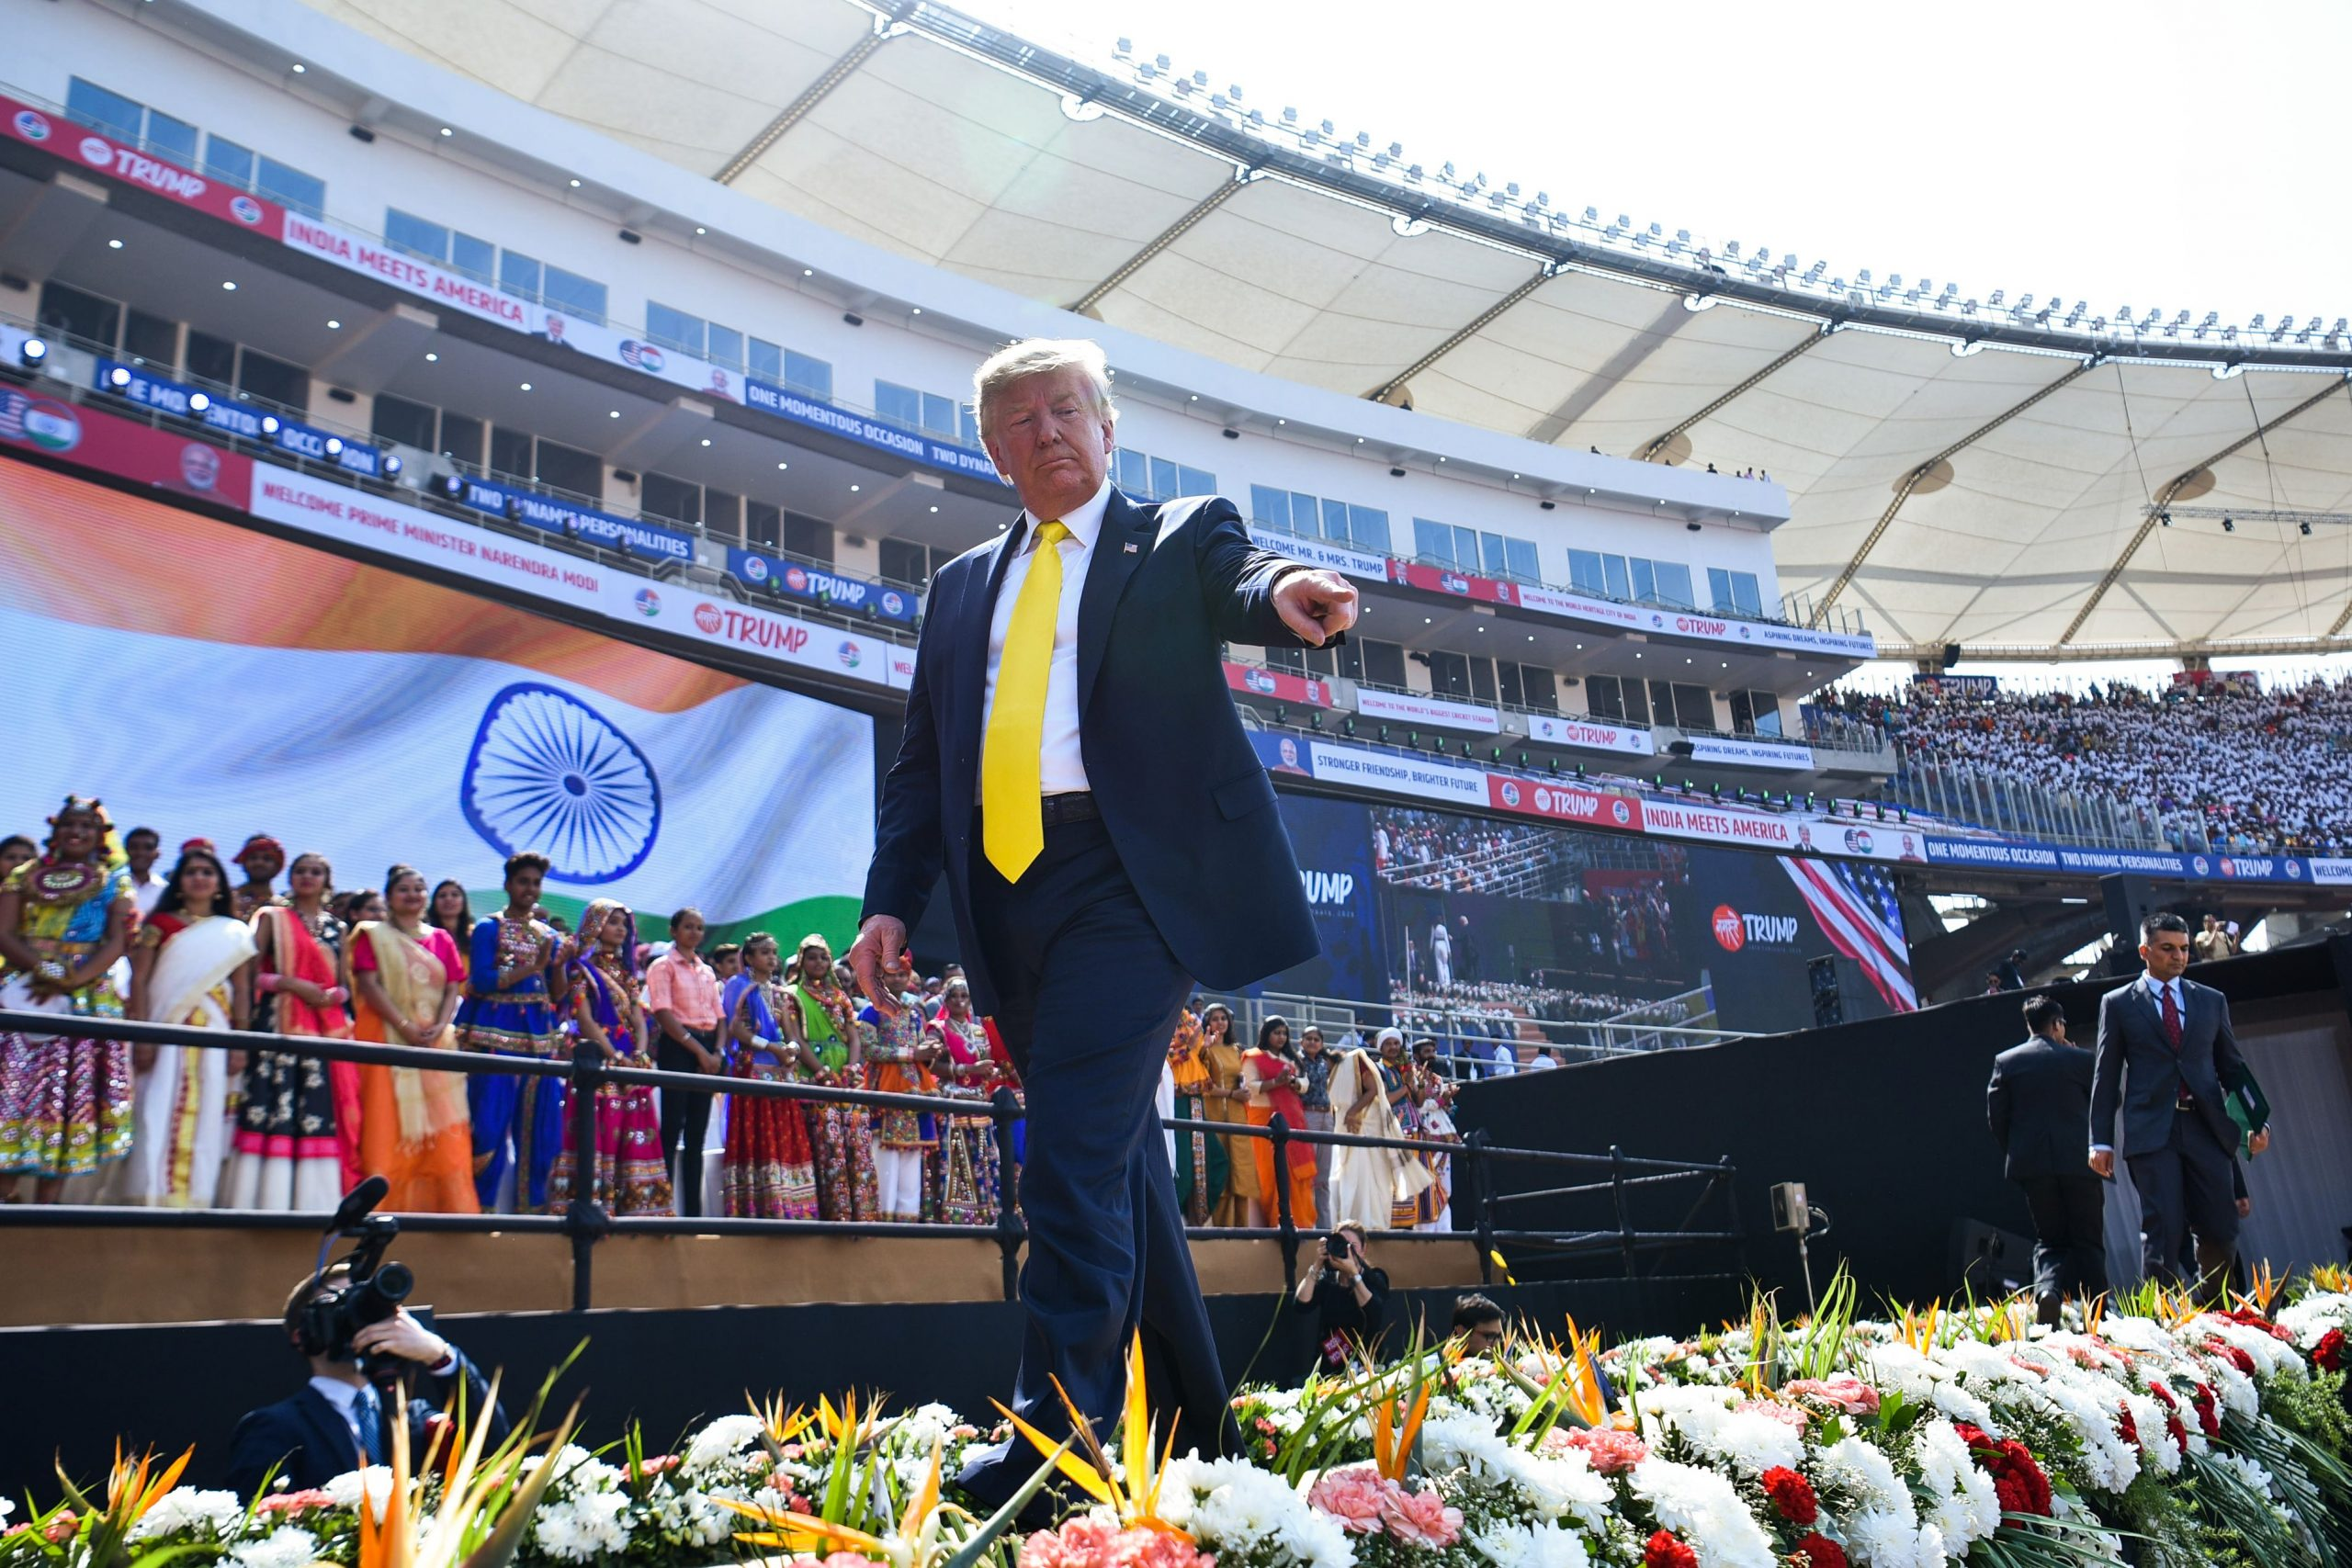 US President Donald Trump leaves after attending 'Namaste Trump' rally at Sardar Patel Stadium in Motera, on the outskirts of Ahmedabad, on February 24, 2020. (Photo by Mandel NGAN / AFP)